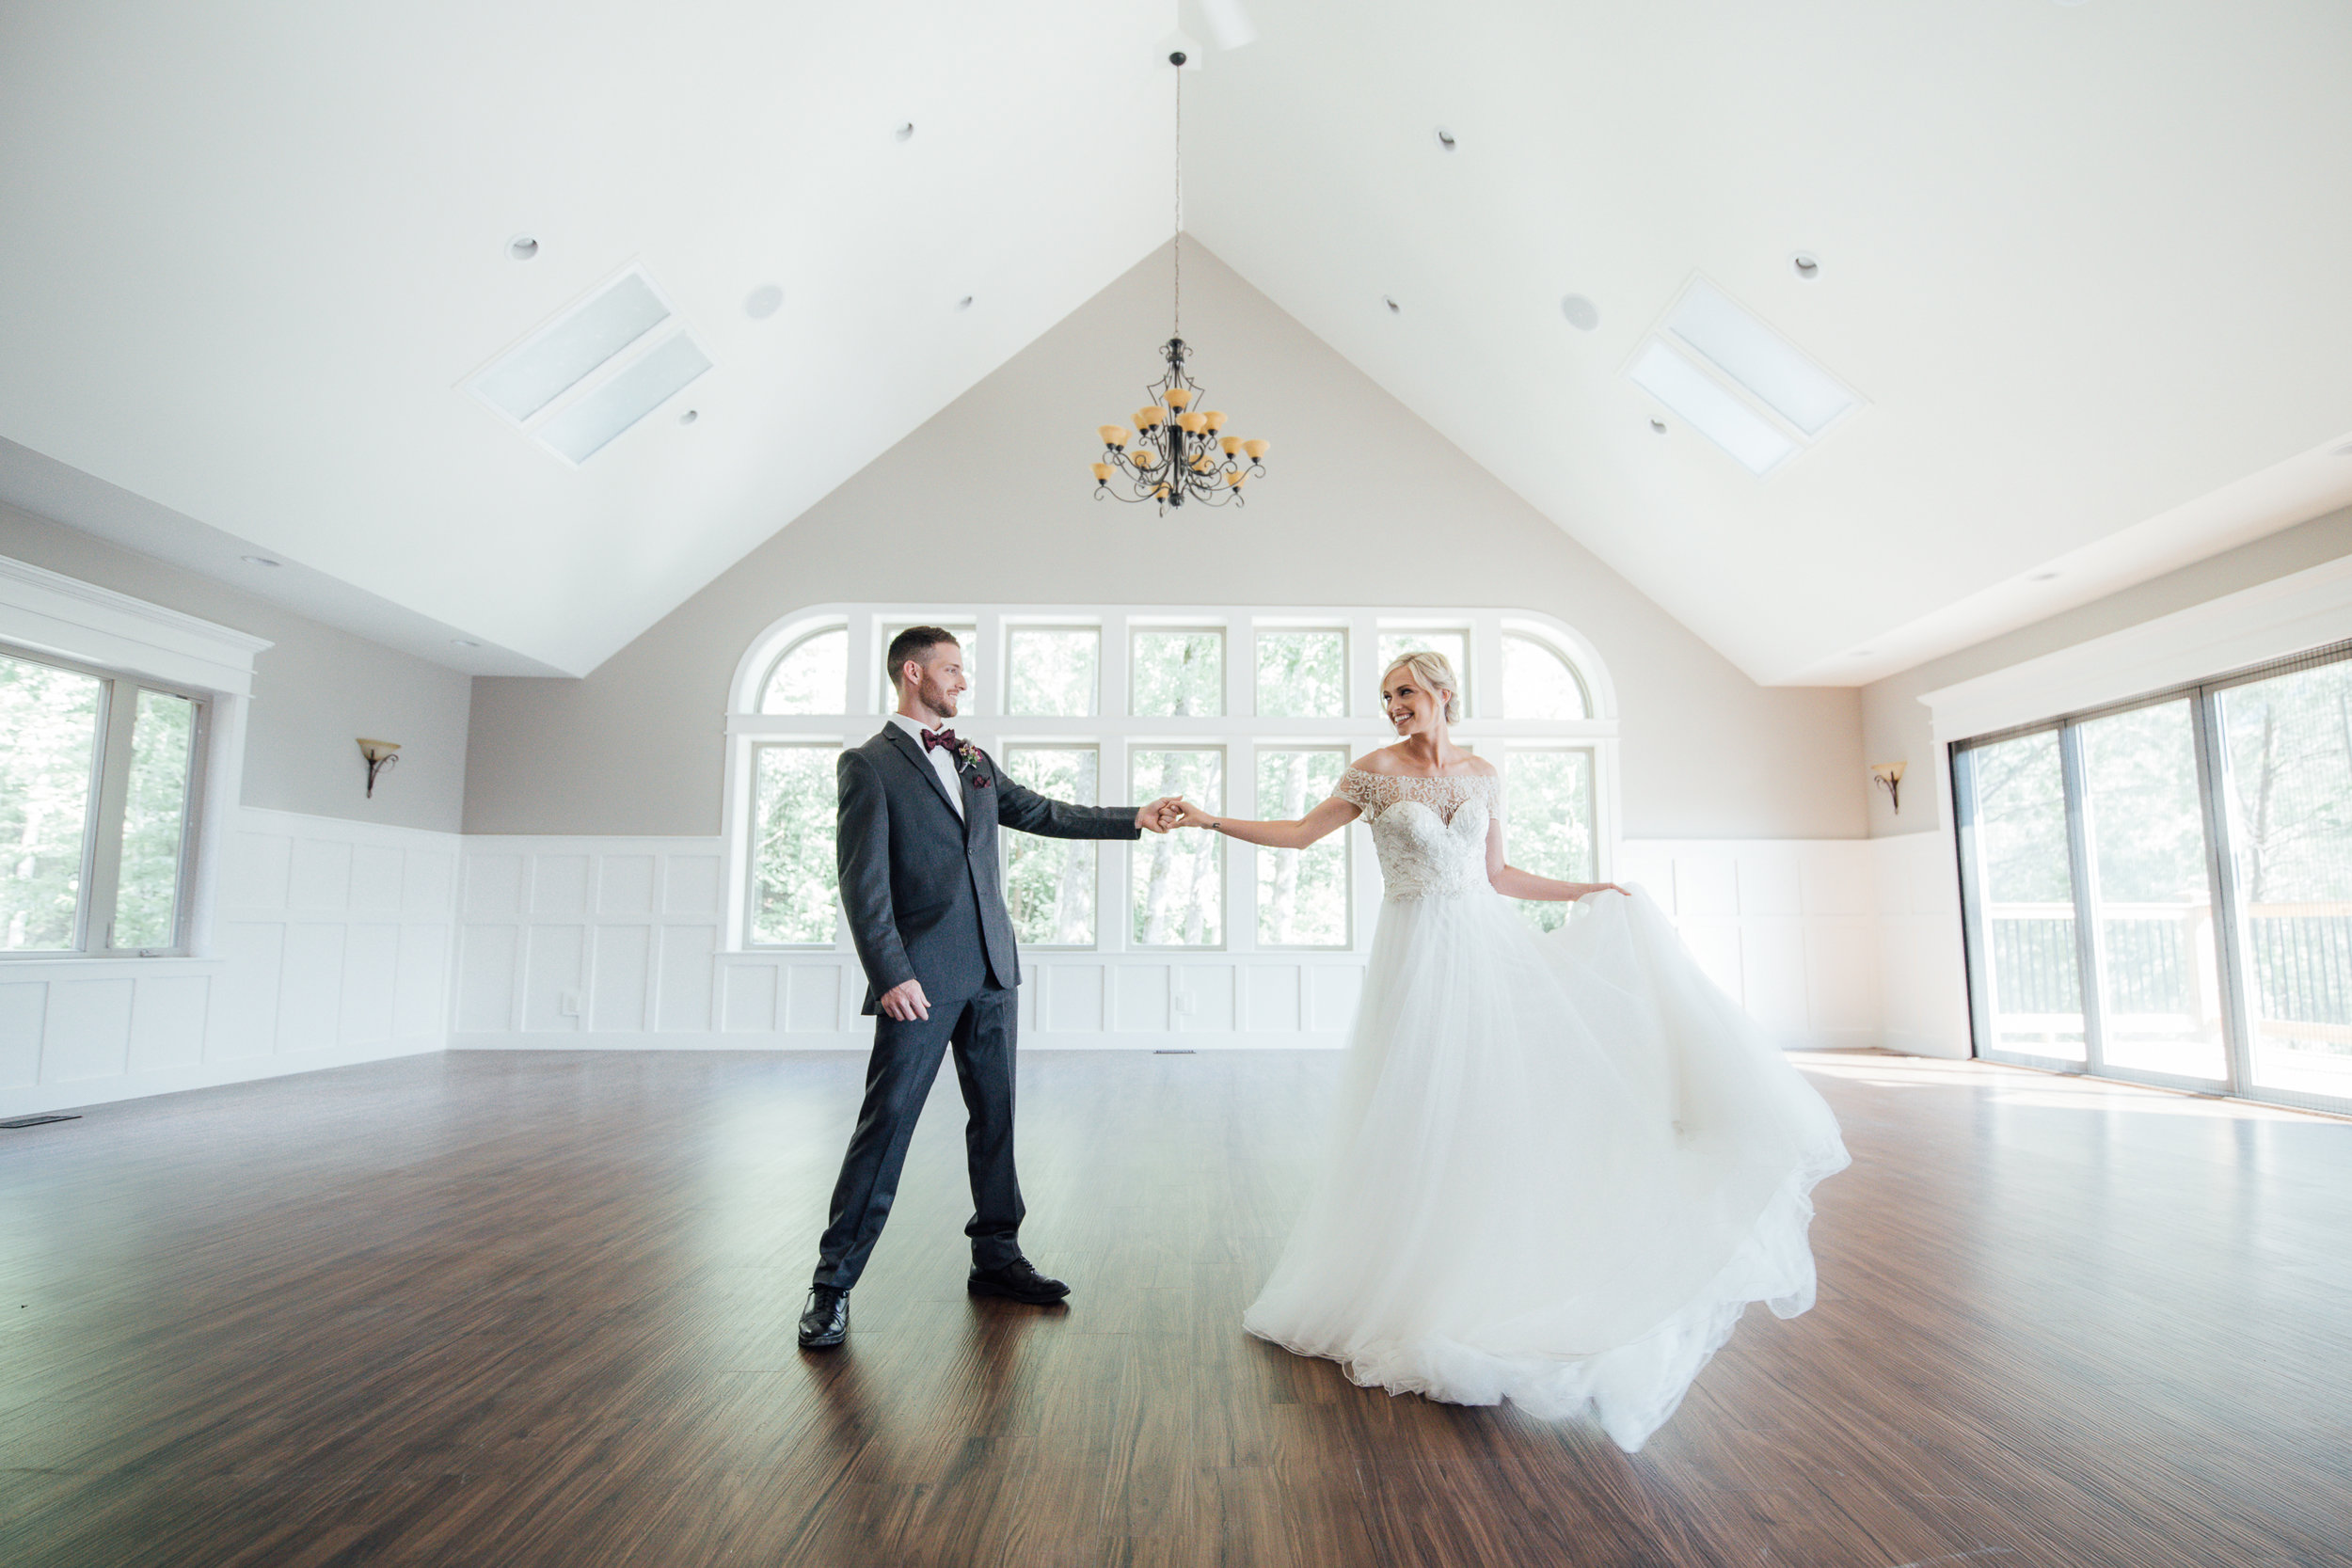 Interior of Windsor Hall | Photo:  Lux Amore Photography